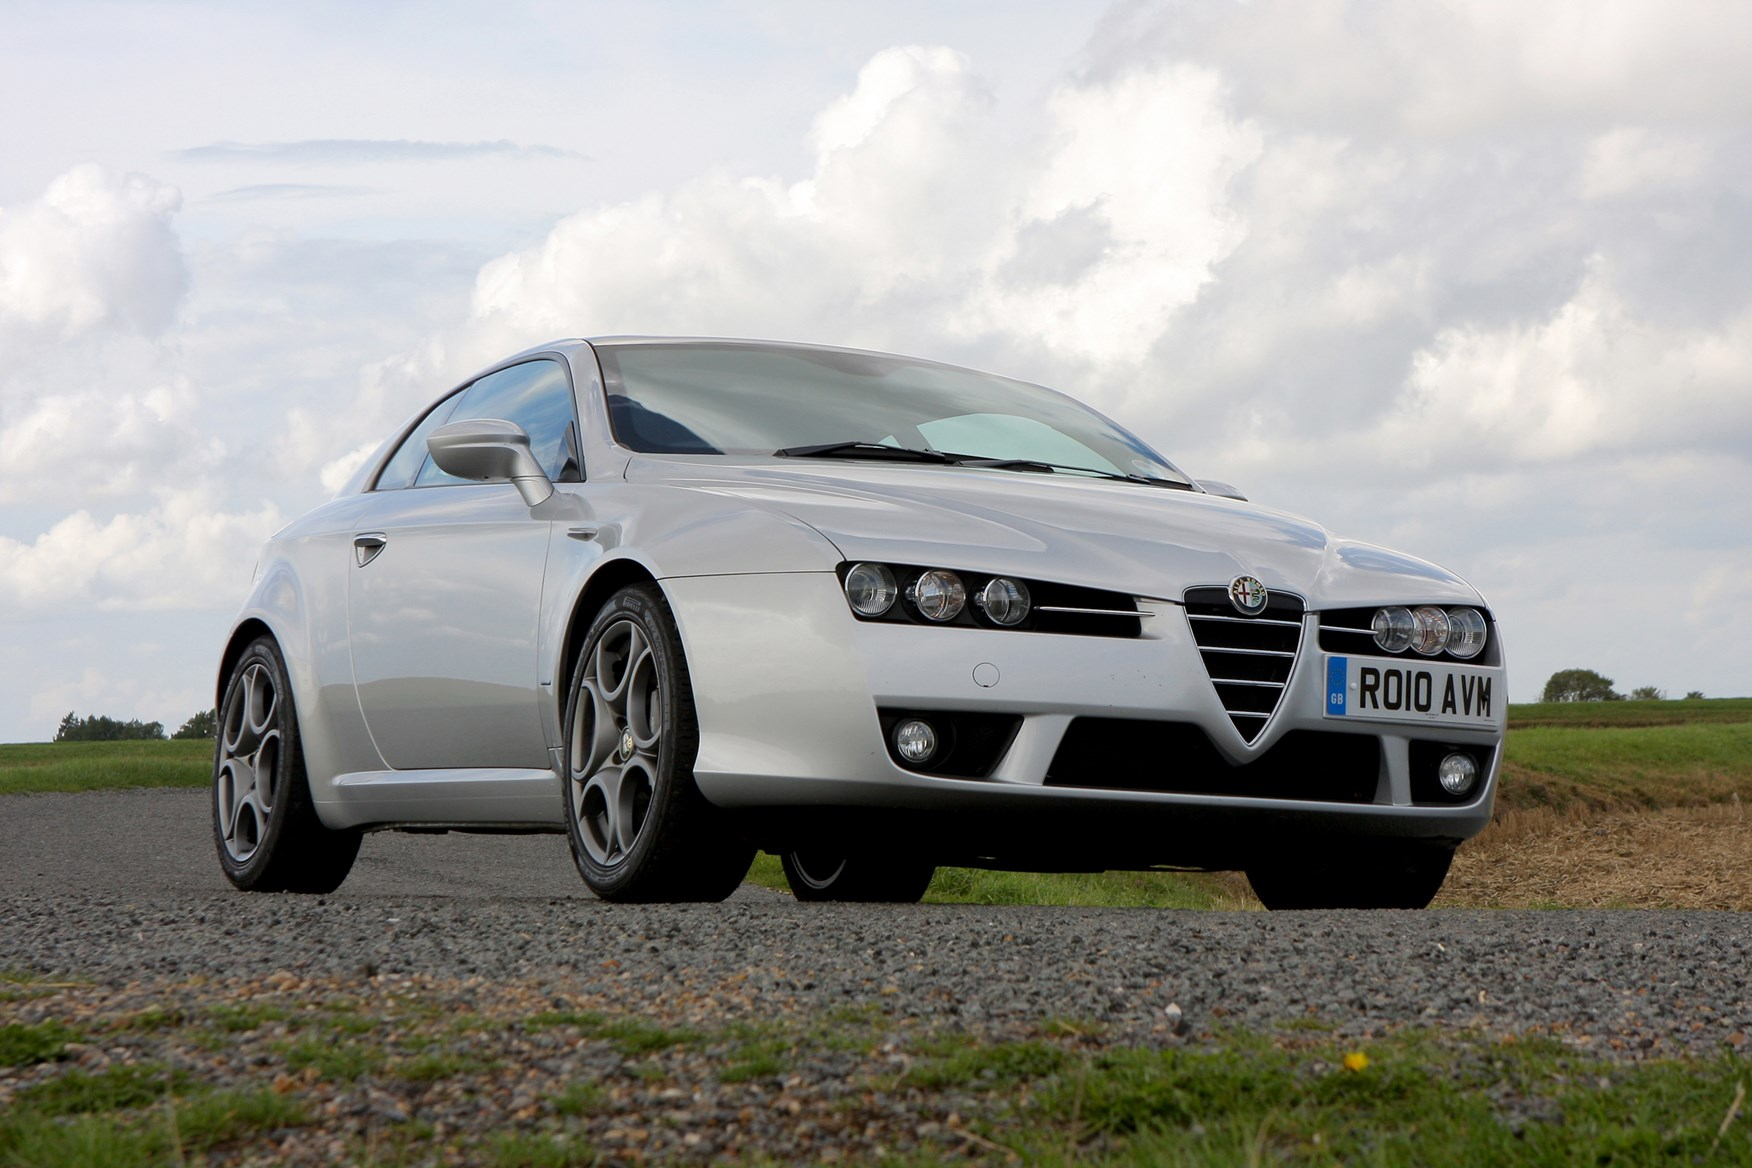 alfa romeo brera coupe review 2006 2010 parkers. Black Bedroom Furniture Sets. Home Design Ideas